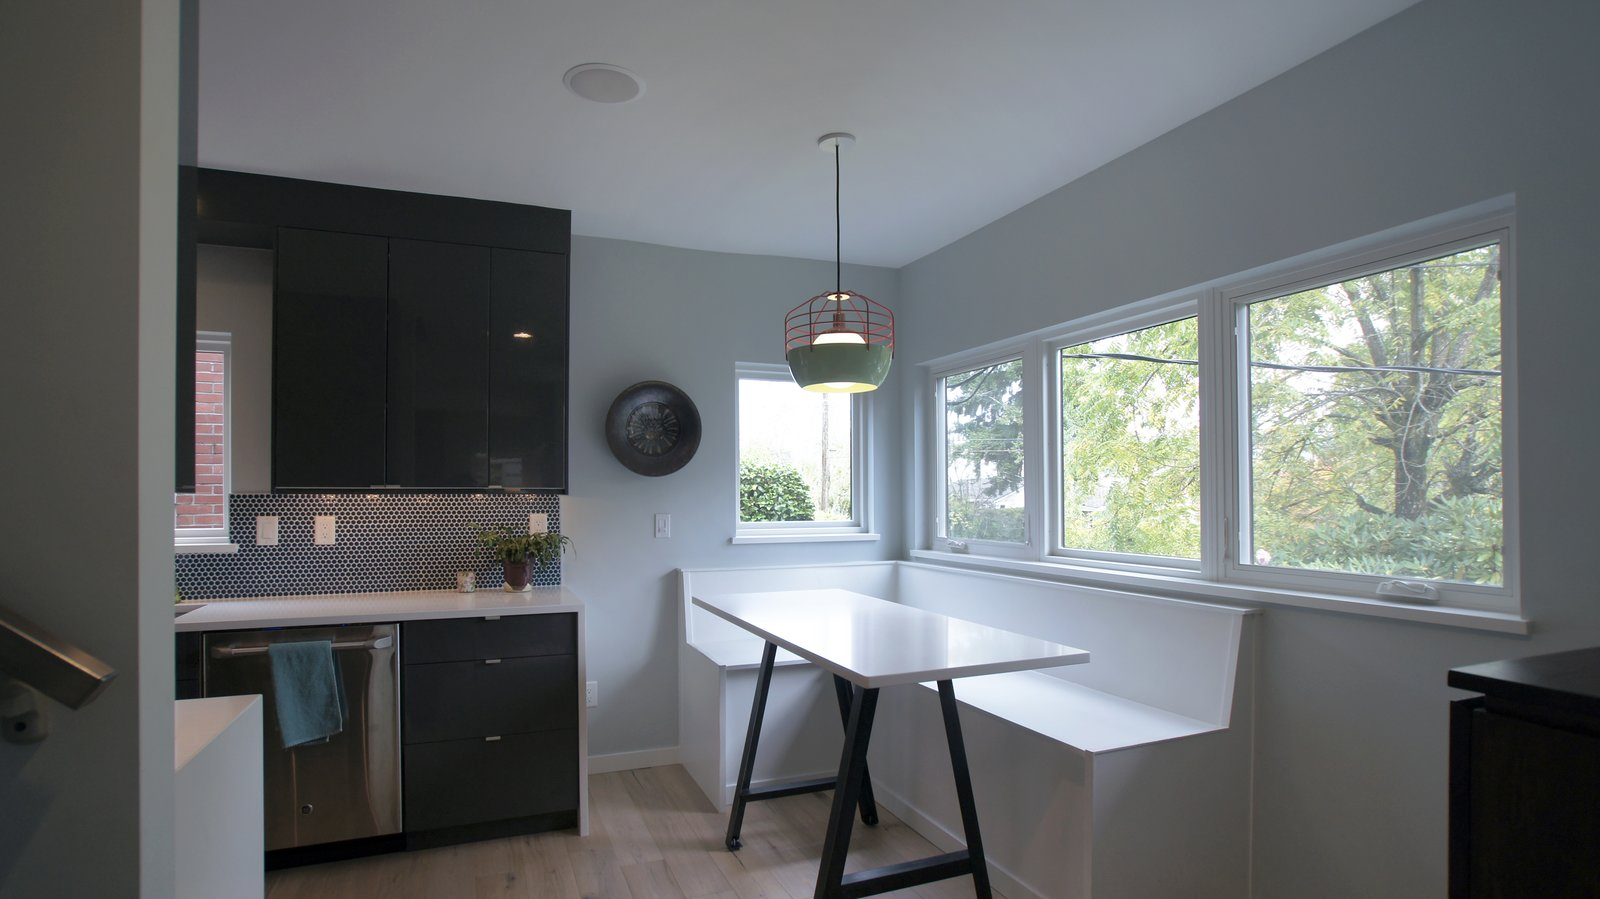 The kitchen is also connected to the front yard, with windows off of the built-in breakfast nook. The breakfast nook offers a casual place to eat, work, or play - while still engaged with what is happening in the kitchen.  Eave House by Atelier Drome